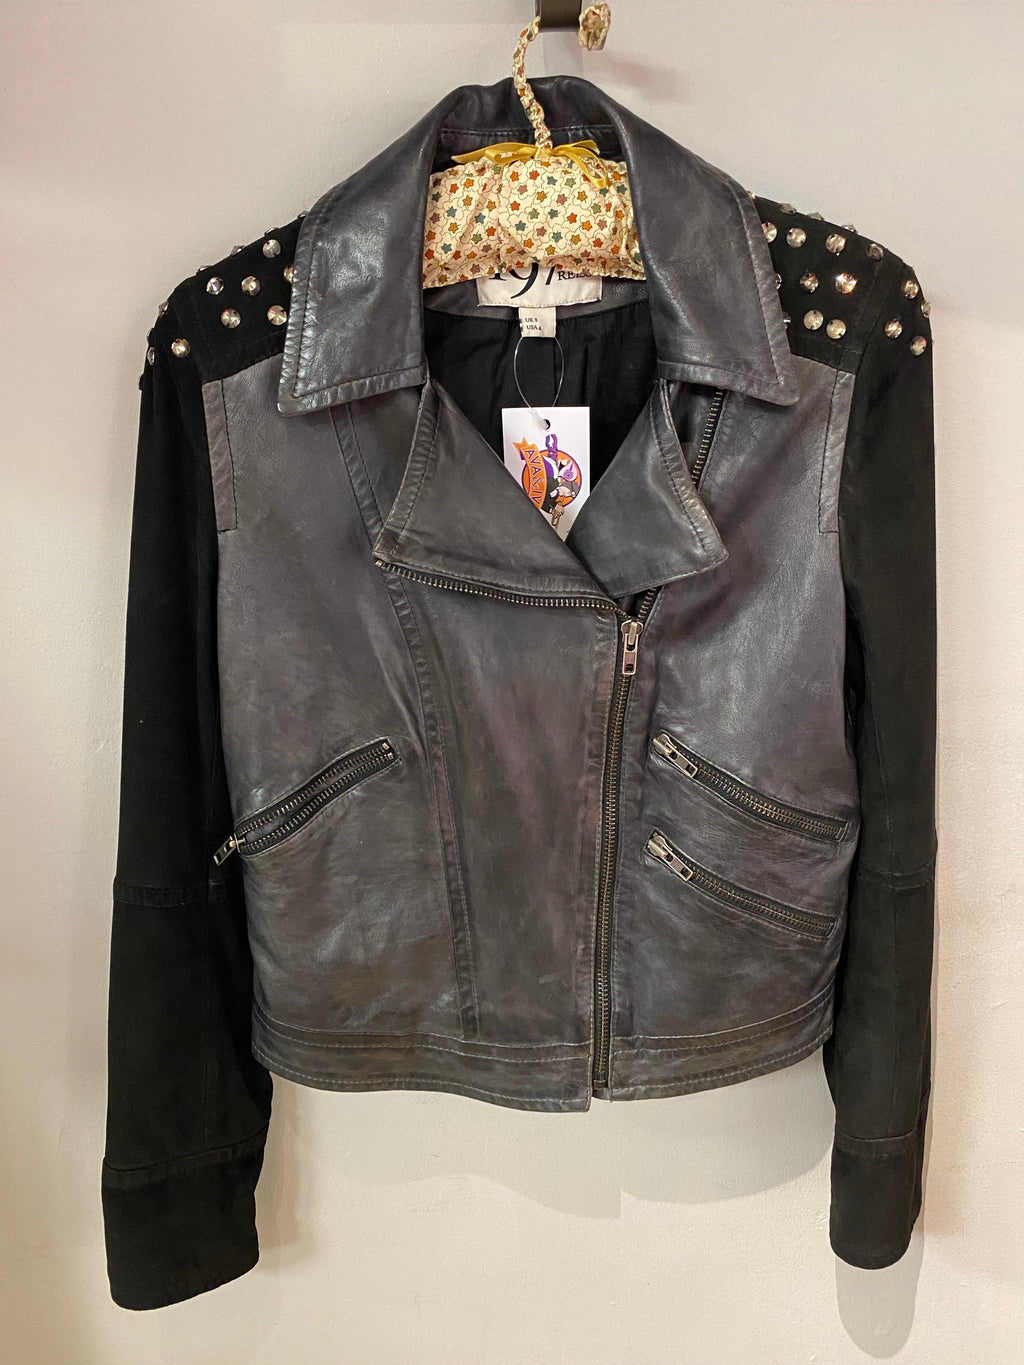 Reiss 1971 black biker style leather jacket with brass studs UK size S